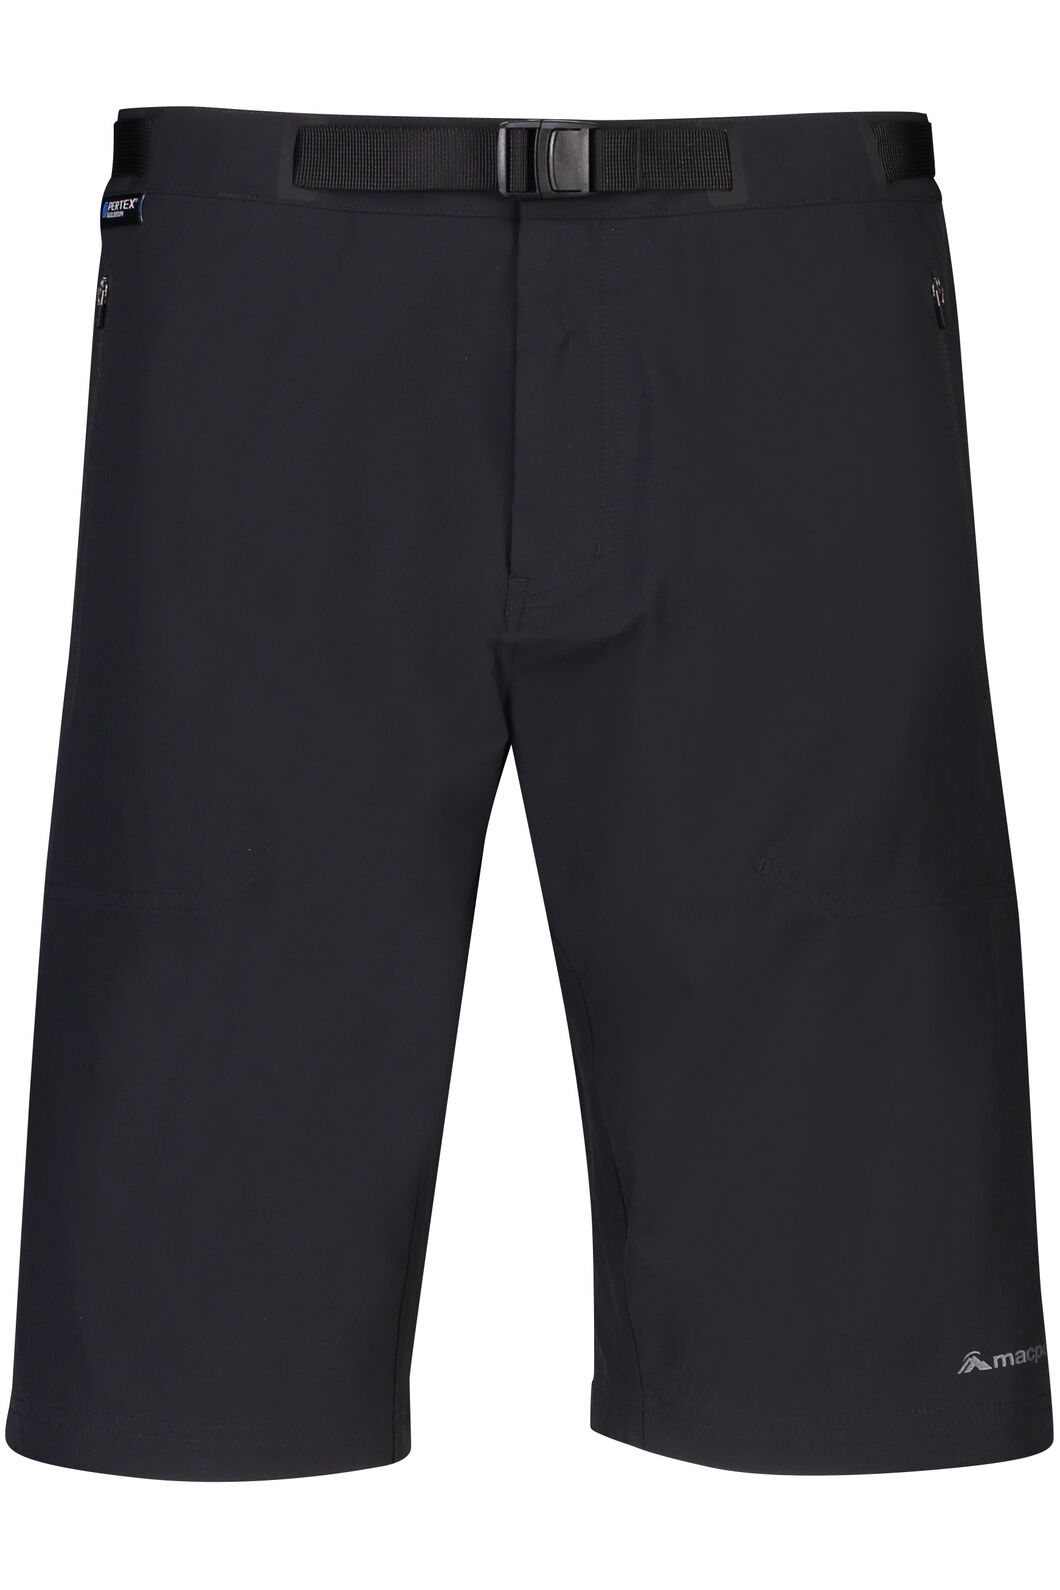 Macpac Trekker Pertex® Equilibrium Softshell Shorts — Men's, Black, hi-res